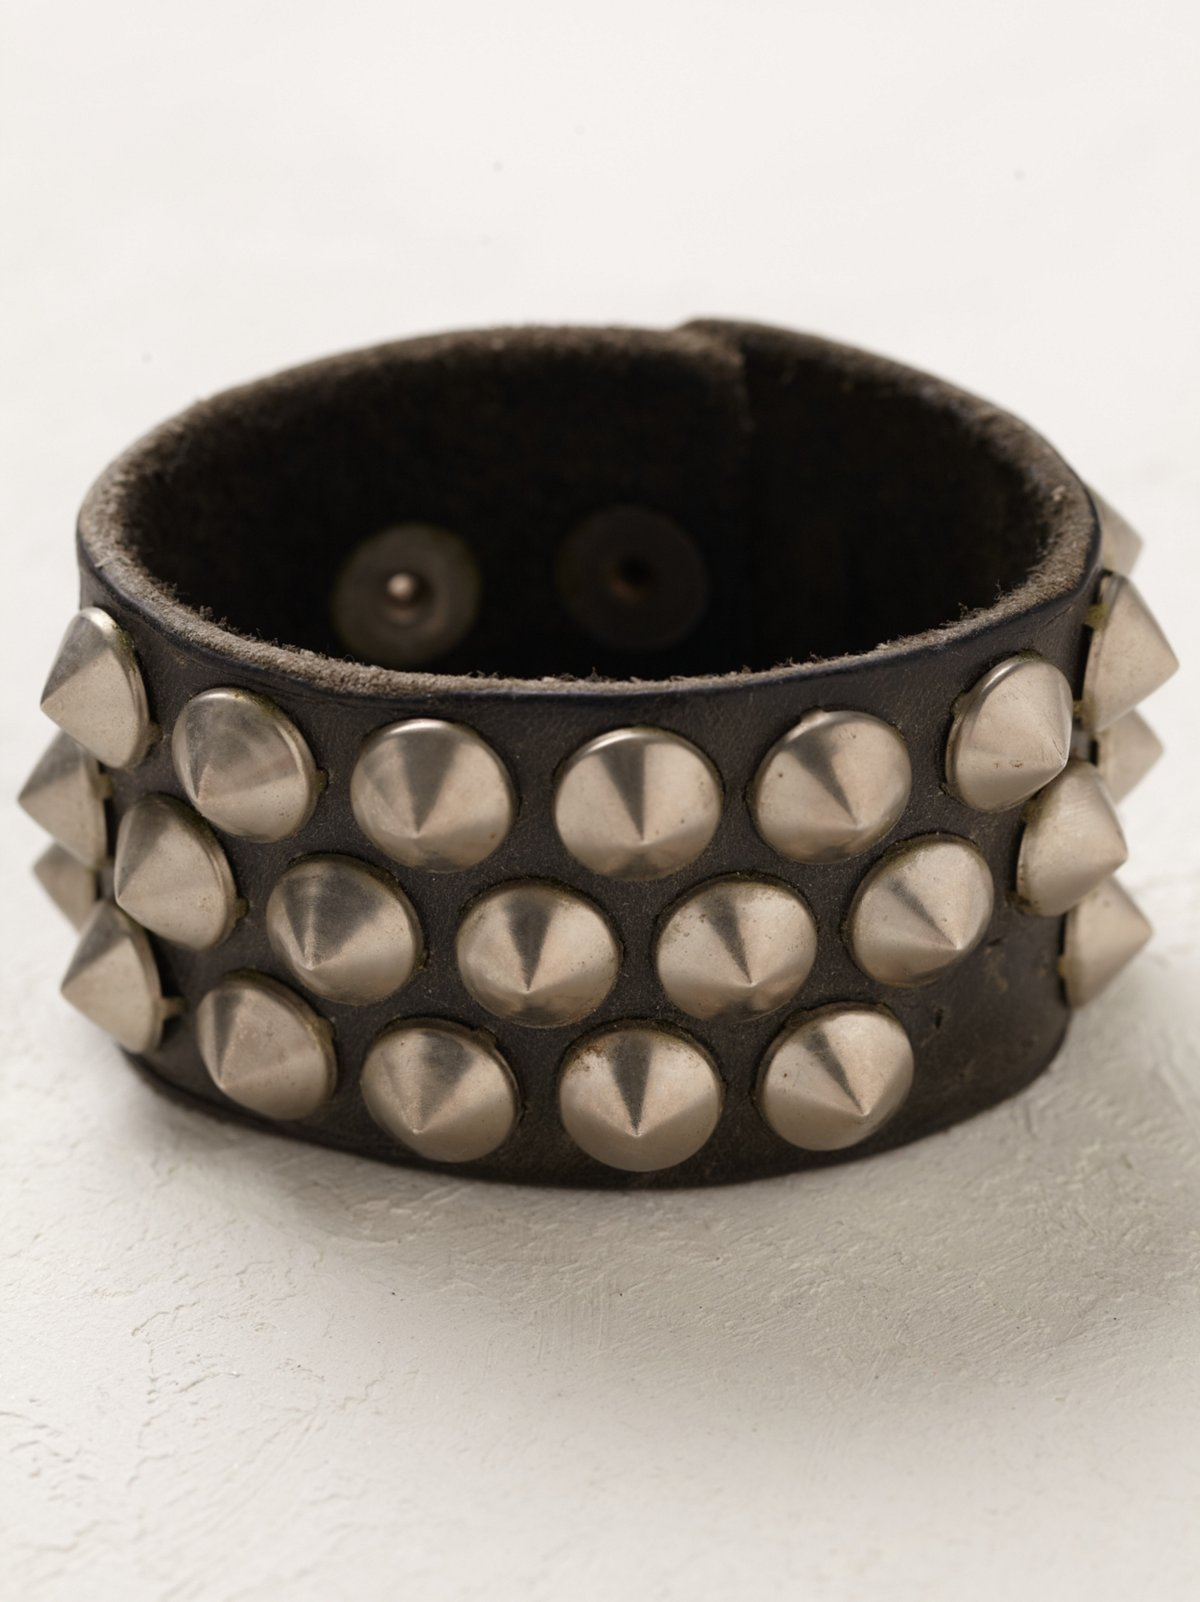 Vintage Spiked Leather Cuff